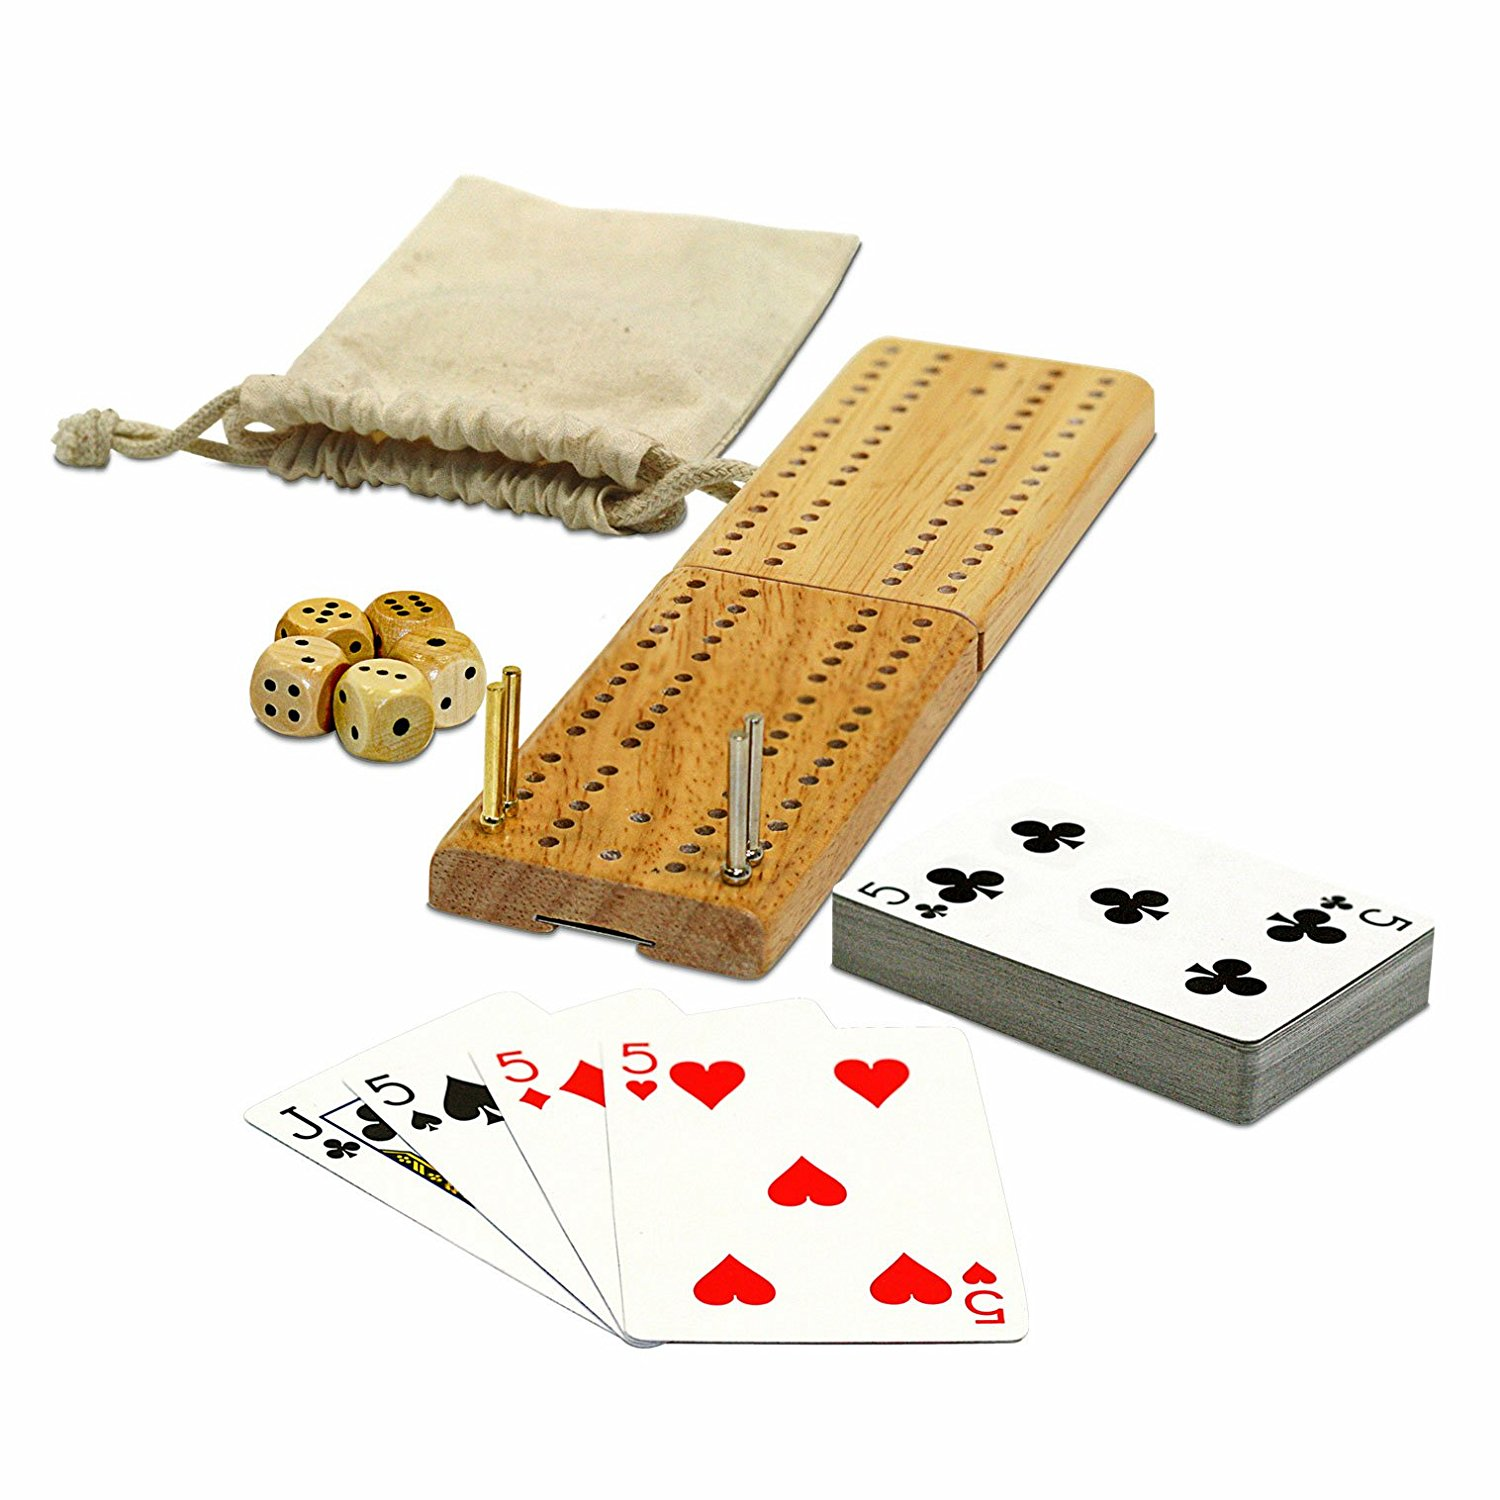 Cribbage & More Travel Game Pack (12 games)